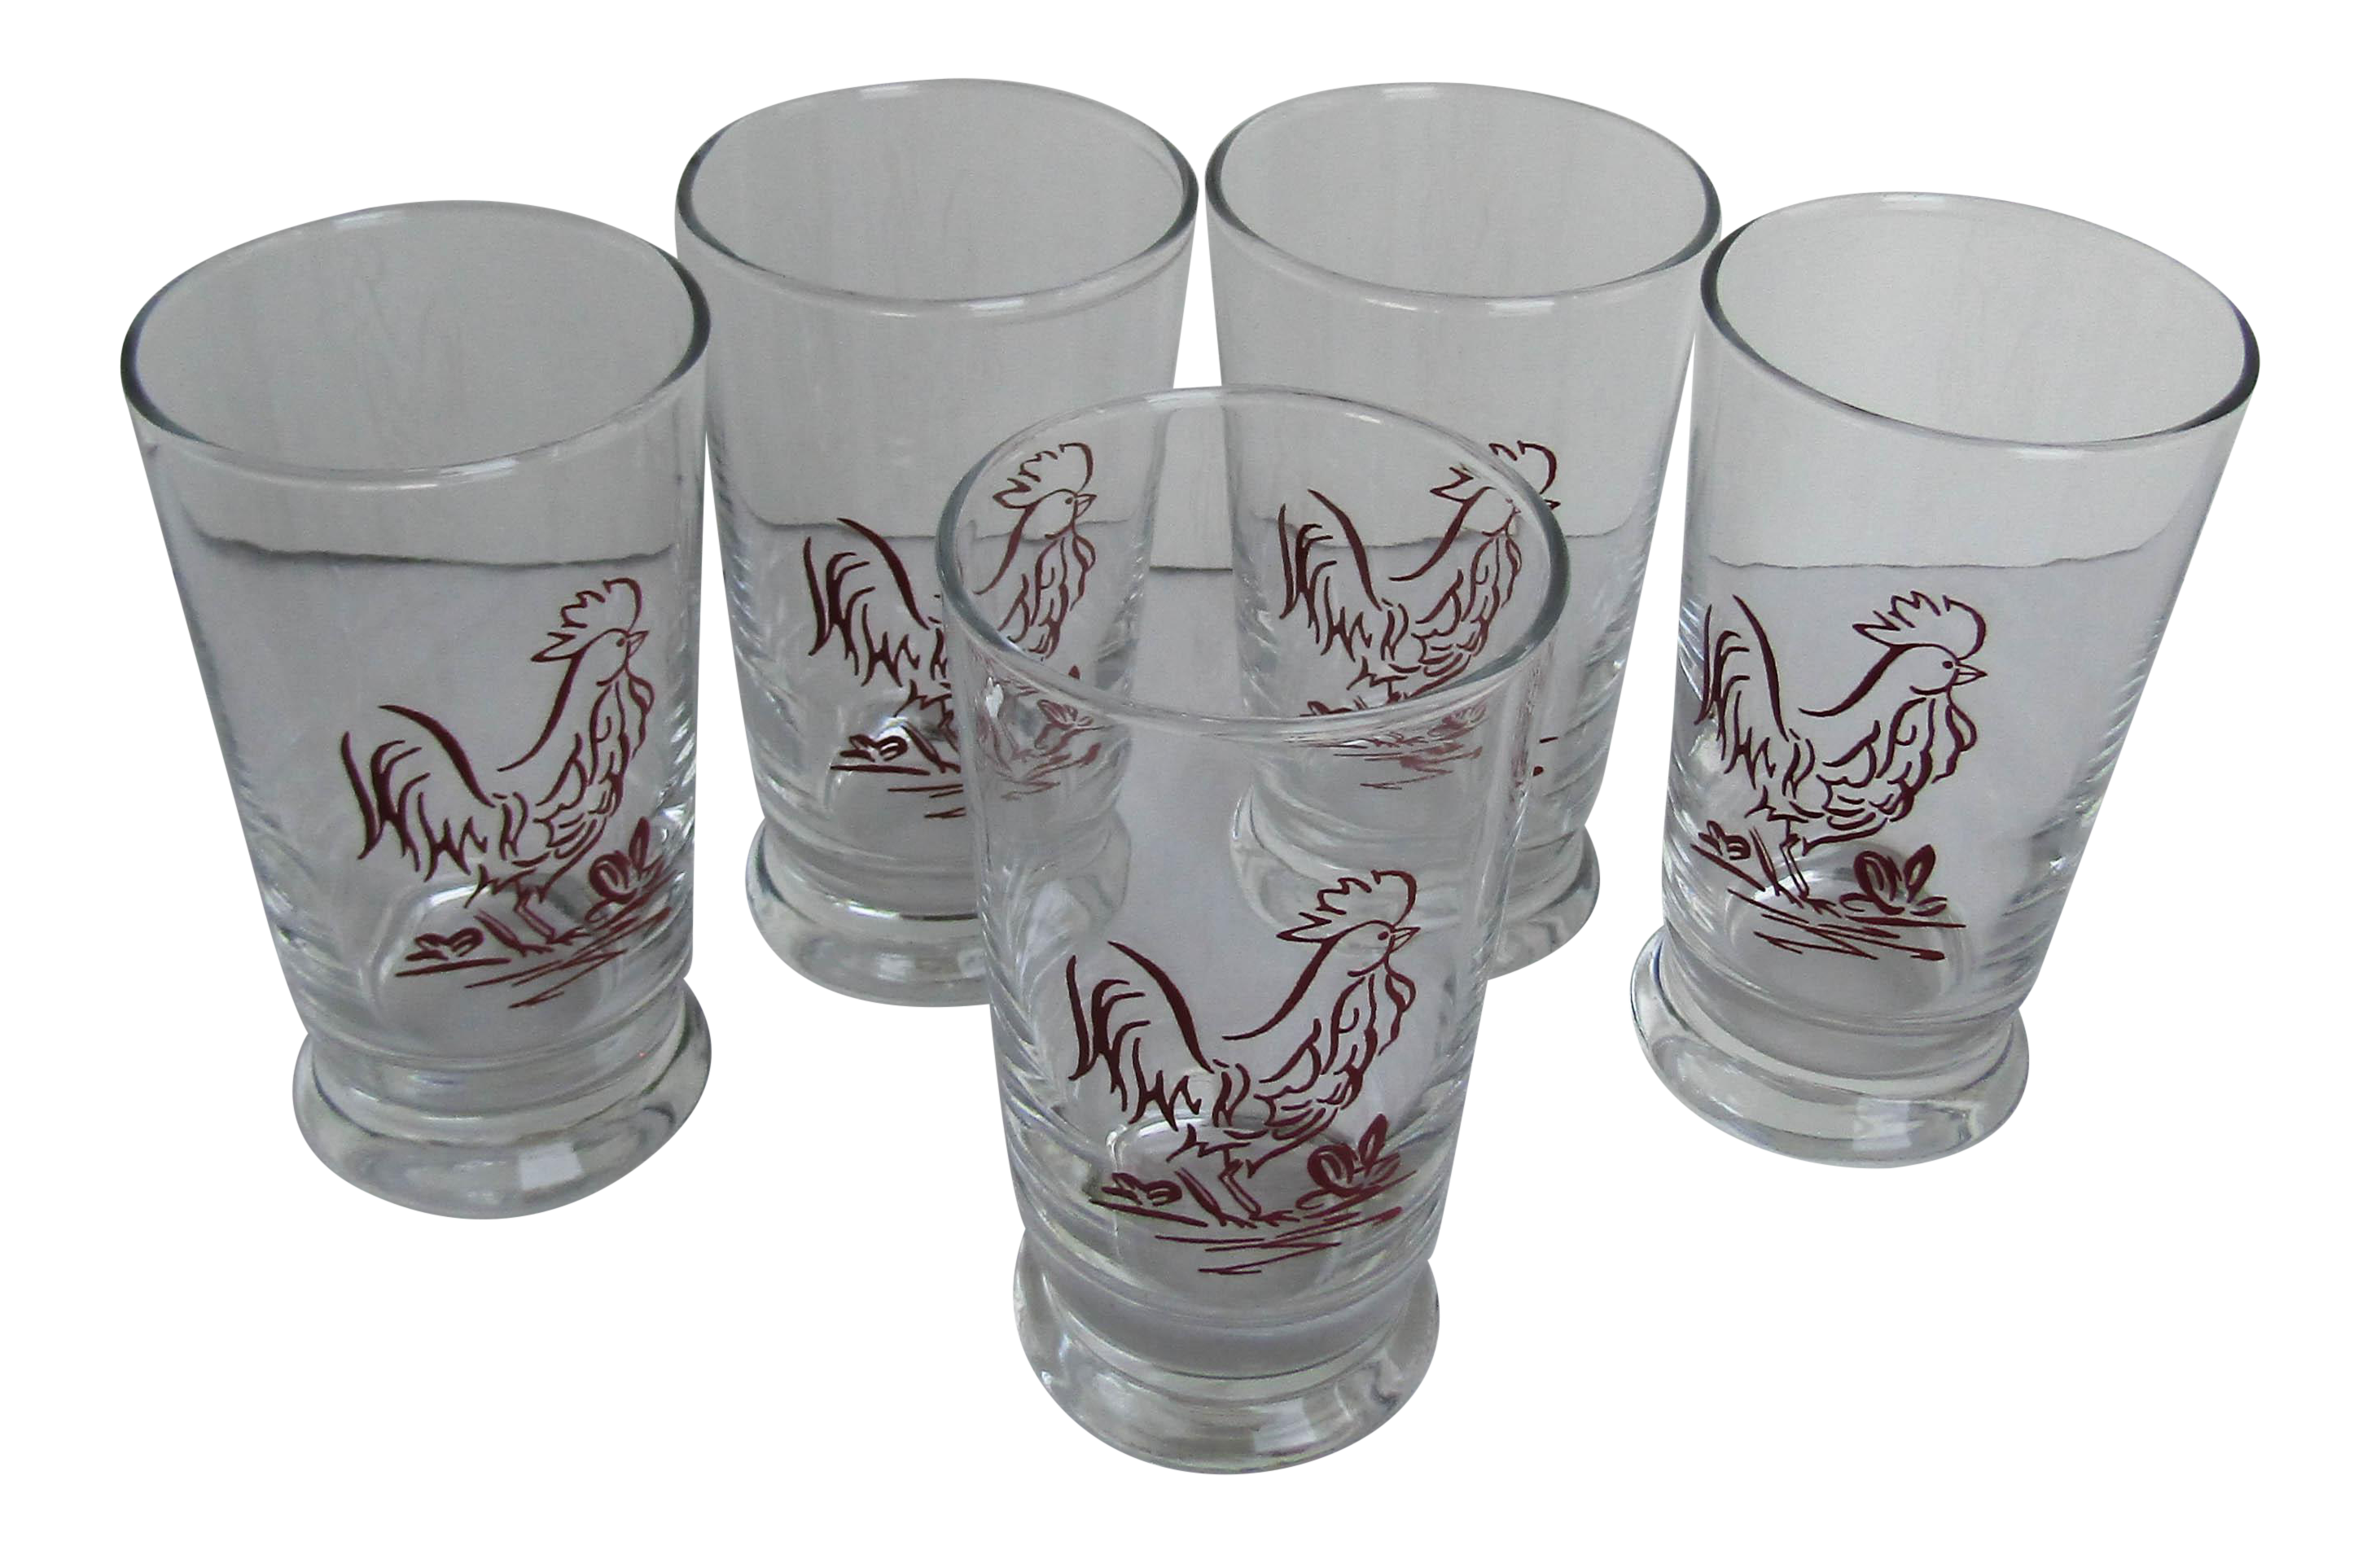 Vintage 1960s Libbey Red Rooster Drinking Glasses Set Of 5 Chairish